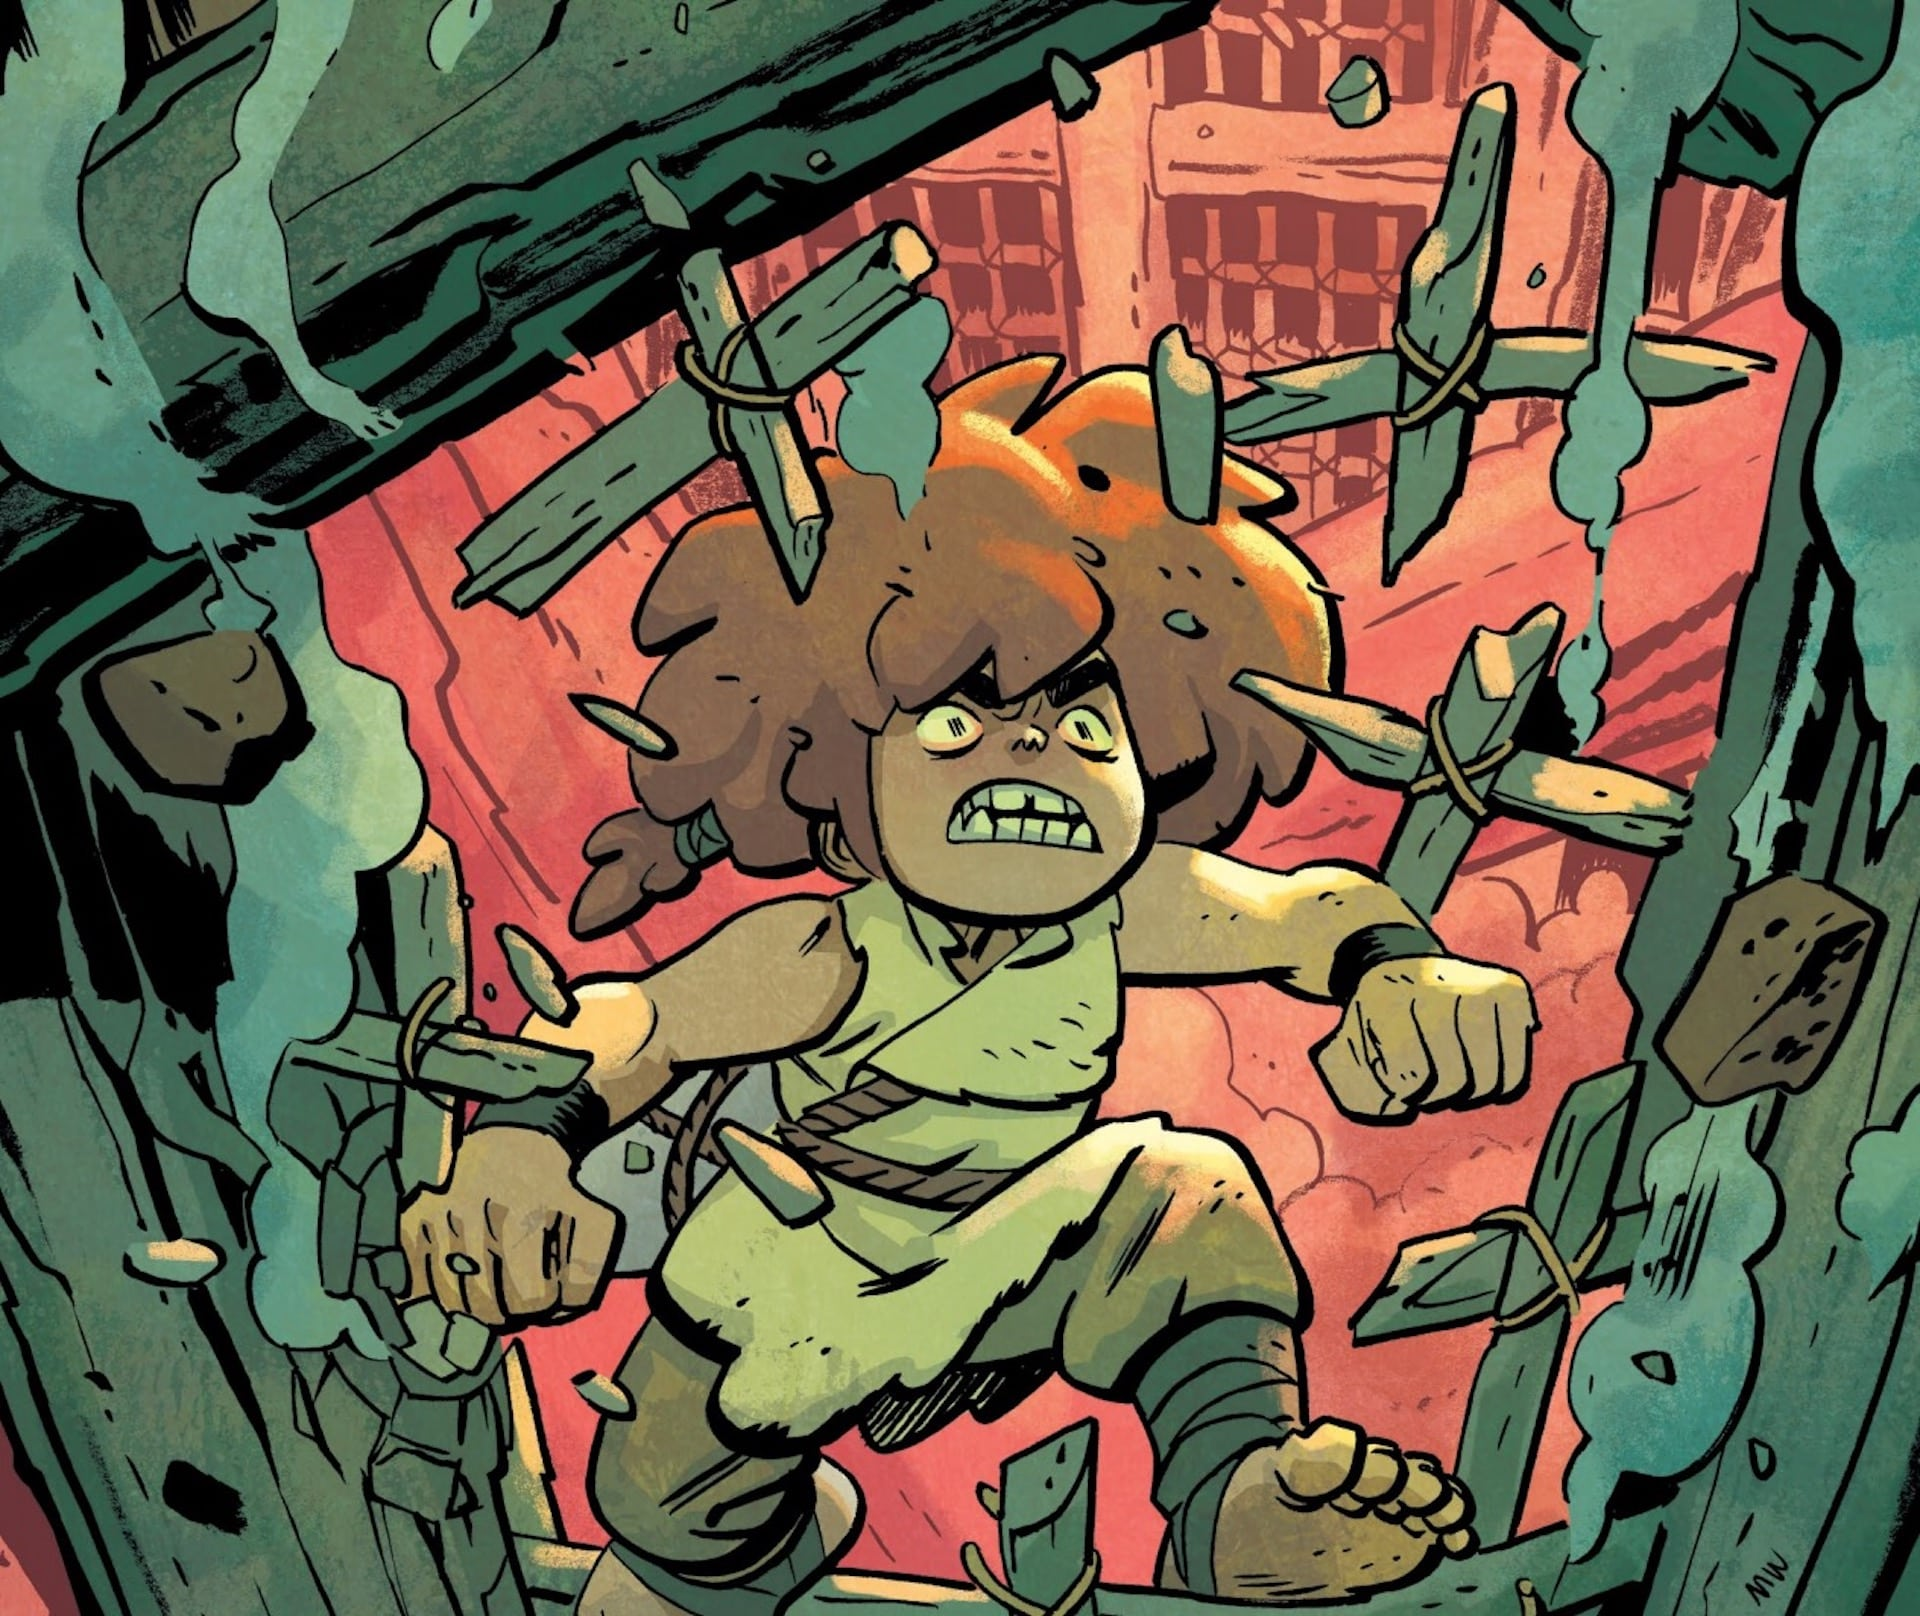 'Jonna and the Unpossible Monsters' #6 shows how a story can feel big in the little moments